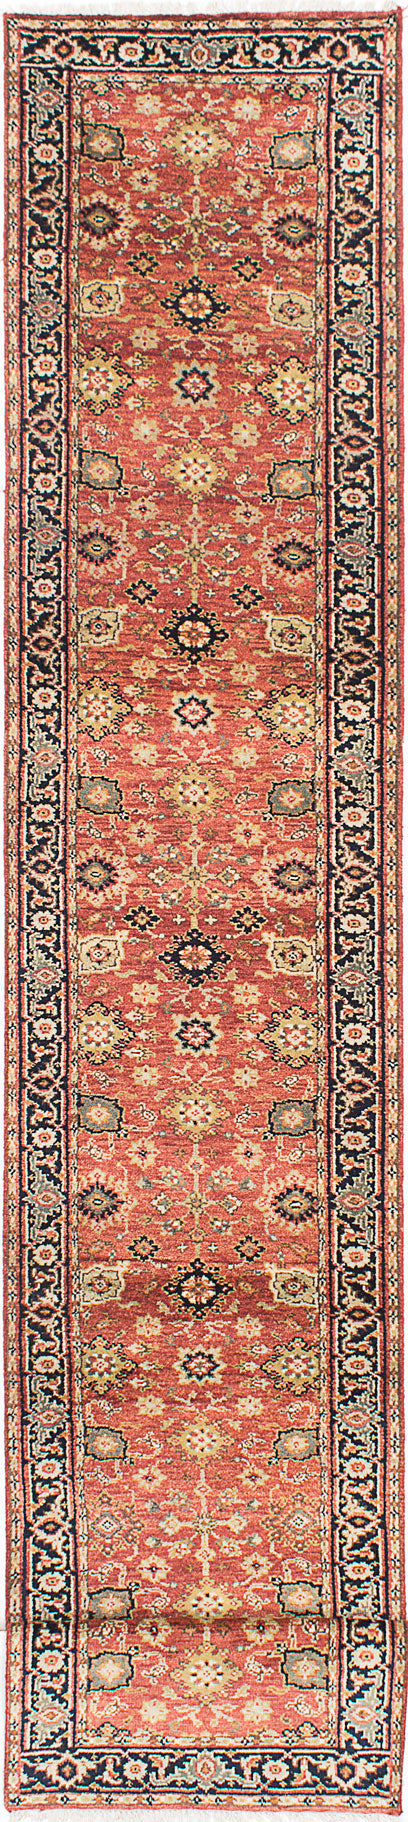 "Hand-knotted Indian Floral  Traditional Serapi-Heritage Runner rug  Copper 2'7 x 19'10"" """